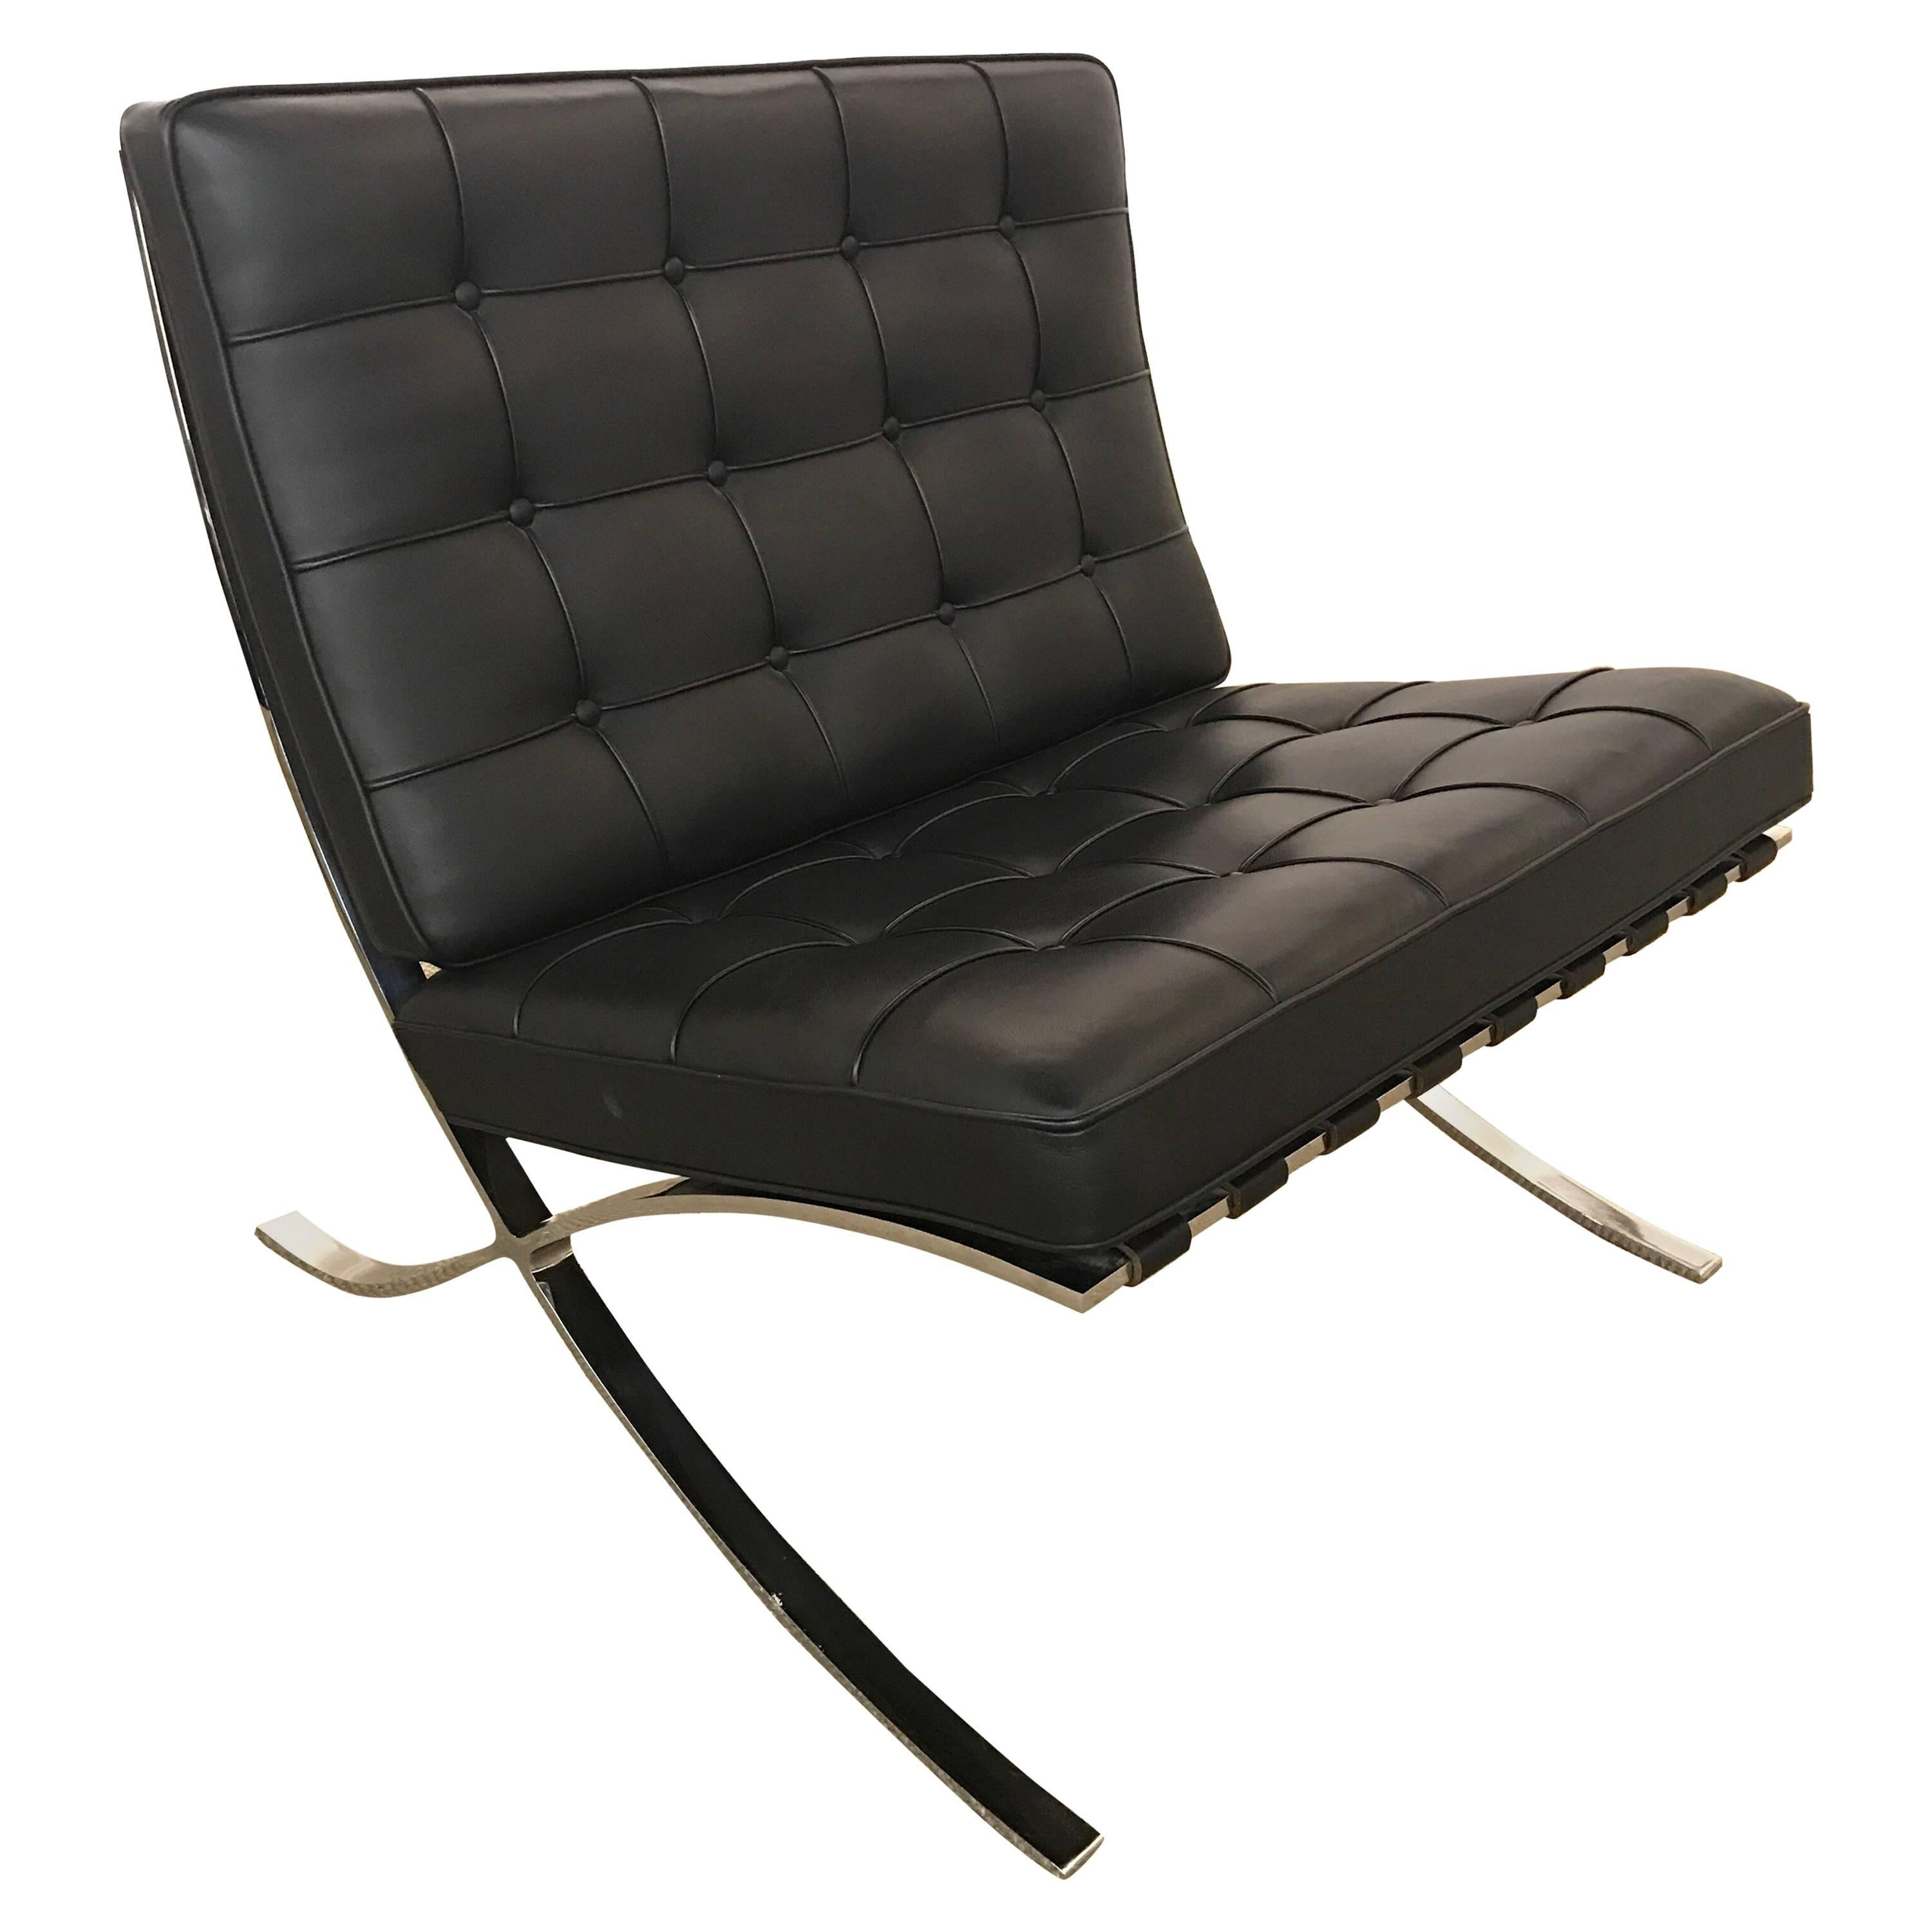 Ludwig Mies Van Der Rohe Lounge Chairs 64 For Sale At 1stdibs